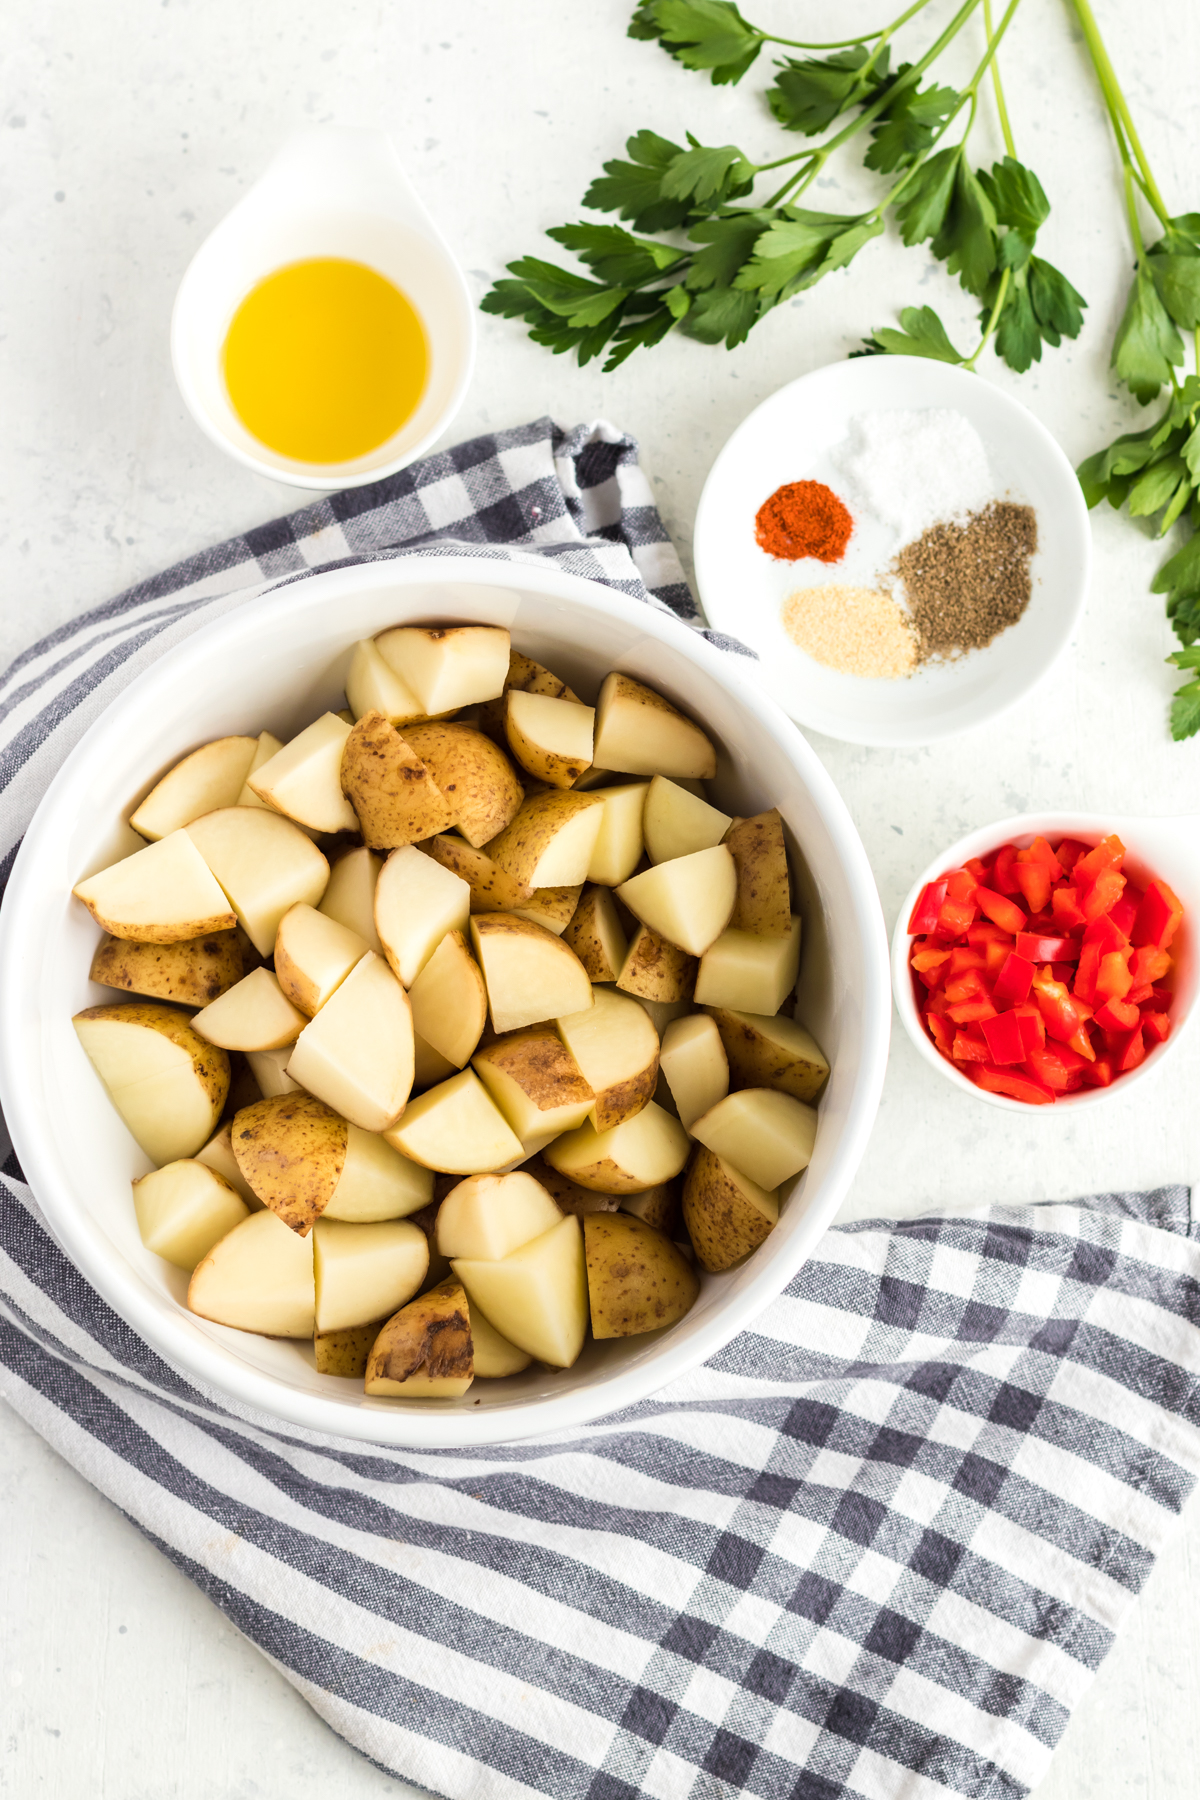 All the ingredients required to make potatoes in an air fryer.